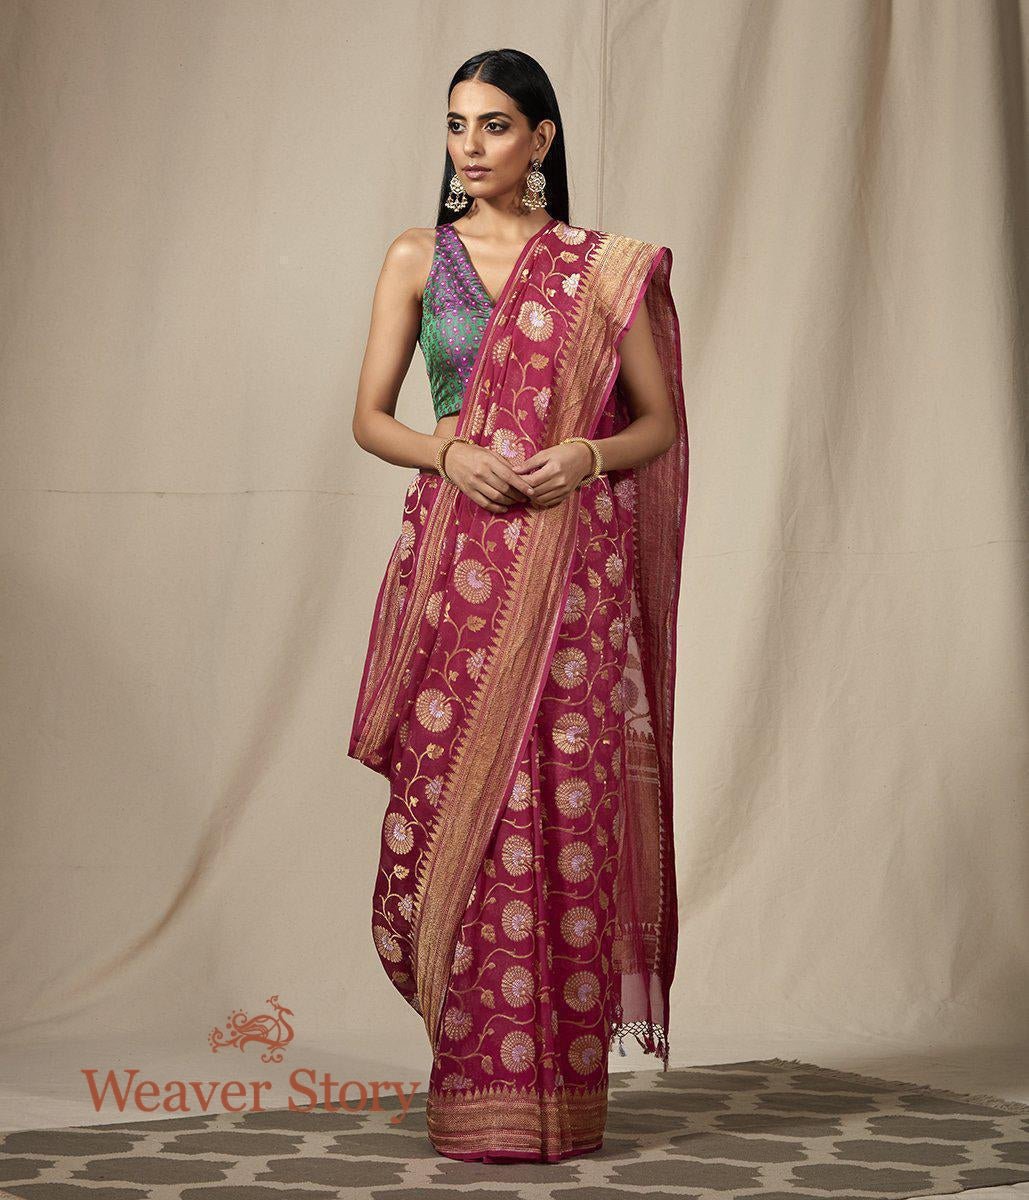 Handwoven Pink Banarasi Georgette Saree with Gold and Silver Floral Jaal